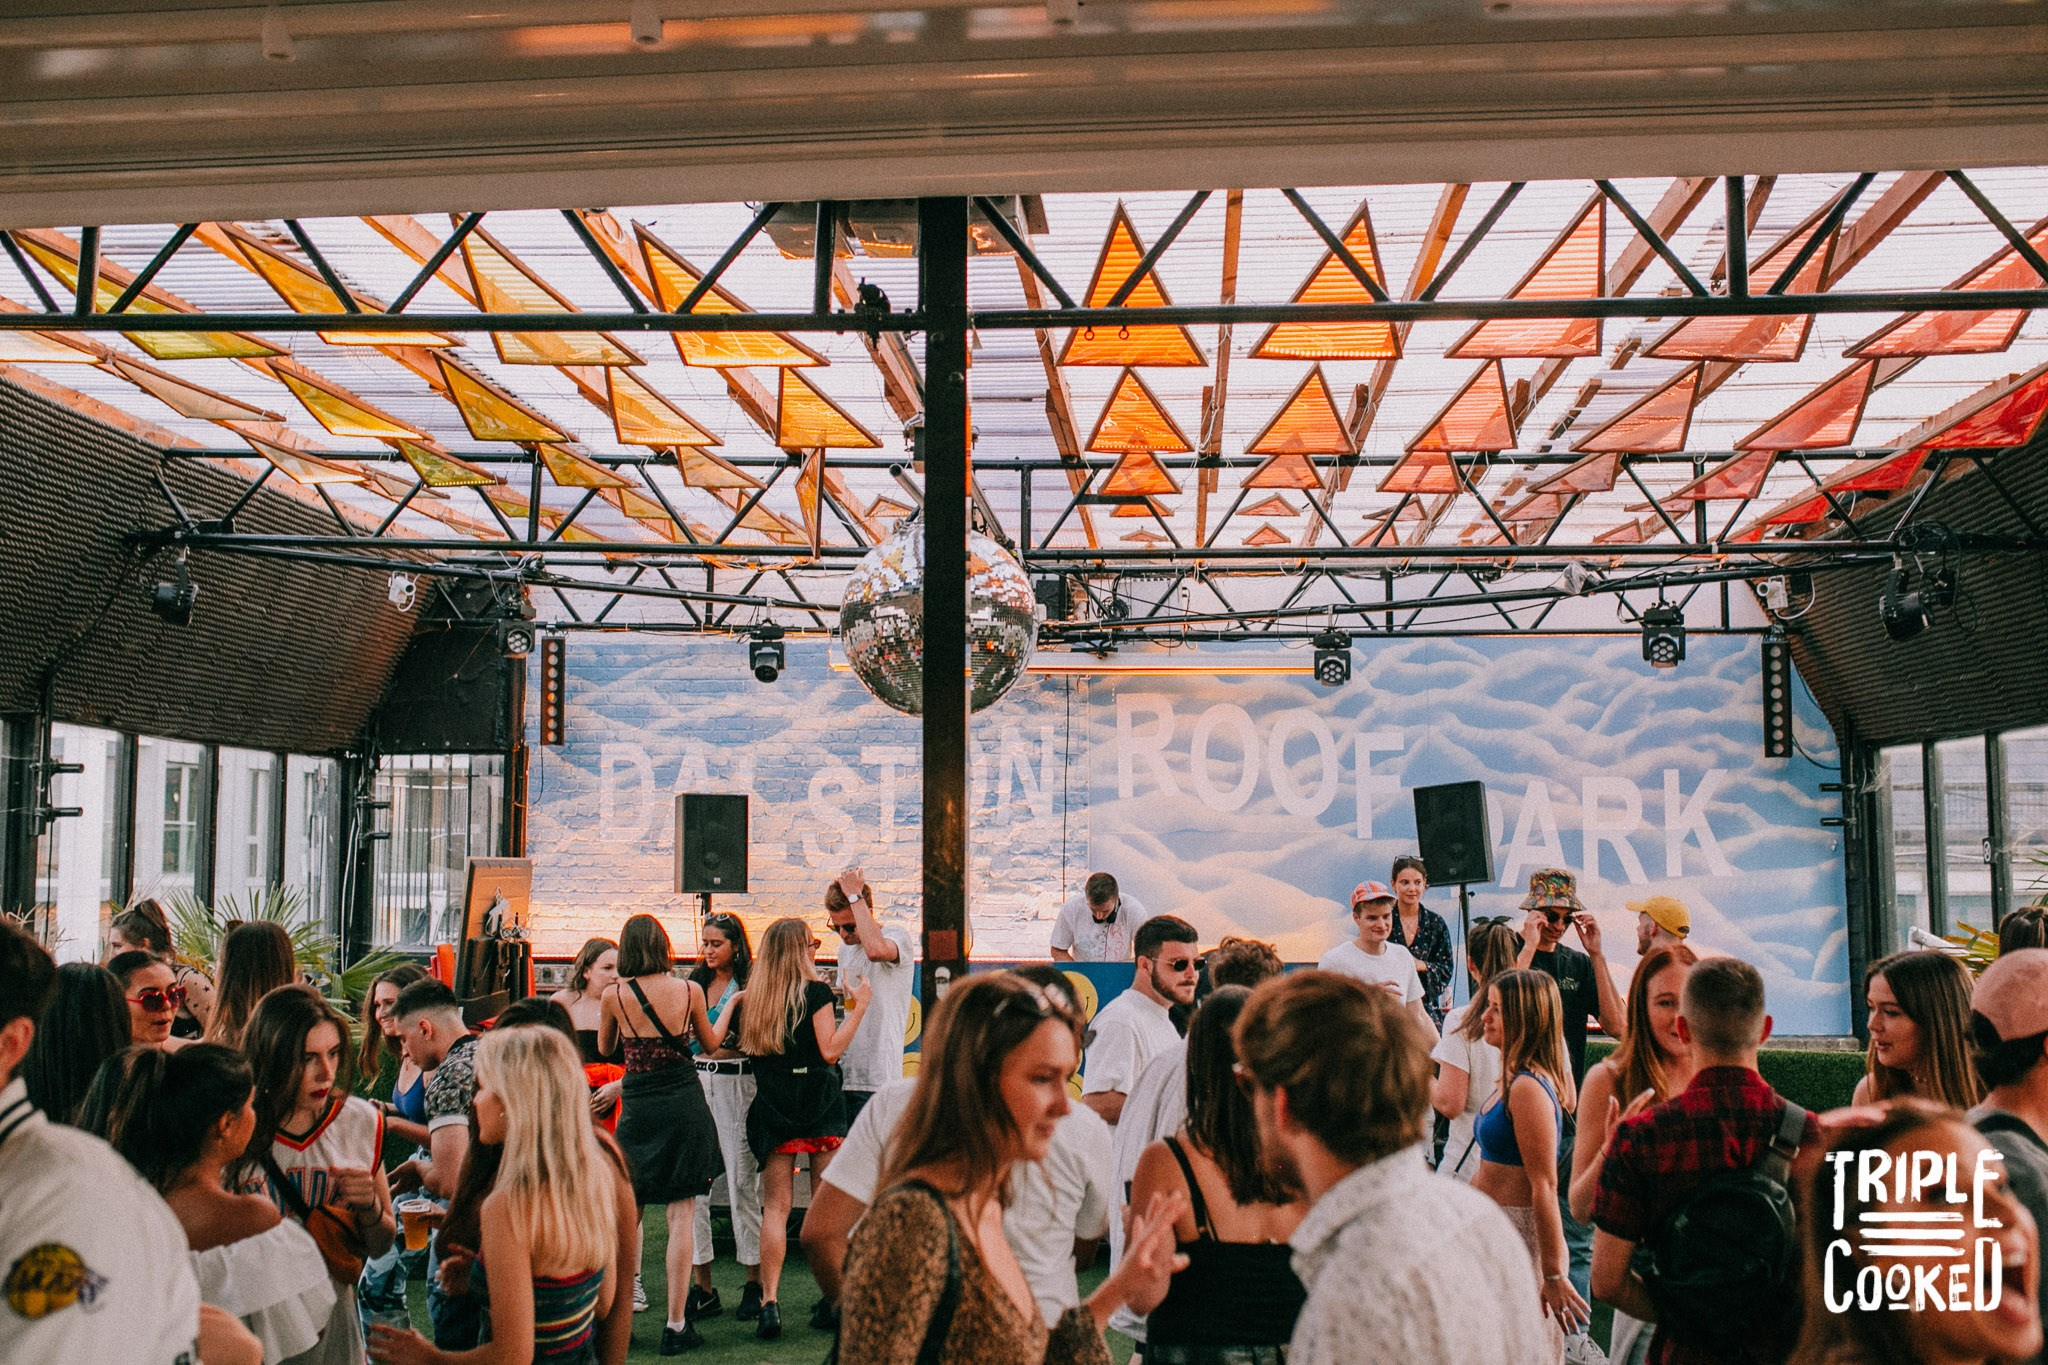 Triple Cooked: Summer Rooftop Party – London